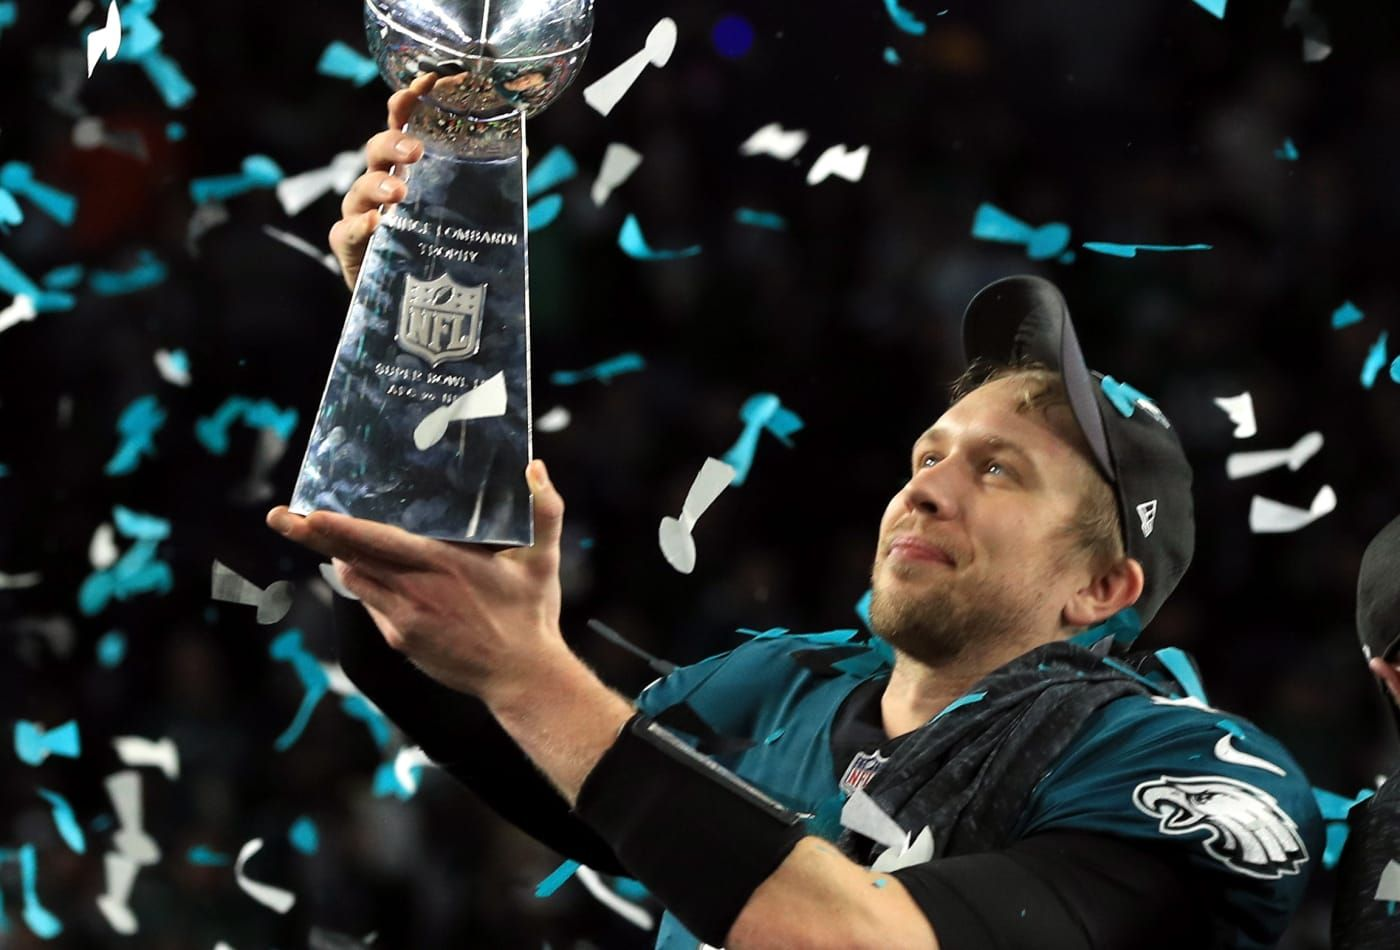 Nfl Predictions Nick Foles Dede Westbrook And Chris Conley To Take The Jaguars In 2019 Playoffs In 2020 Jaguars Dede Westbrook Philadelphia Eagles Pictures